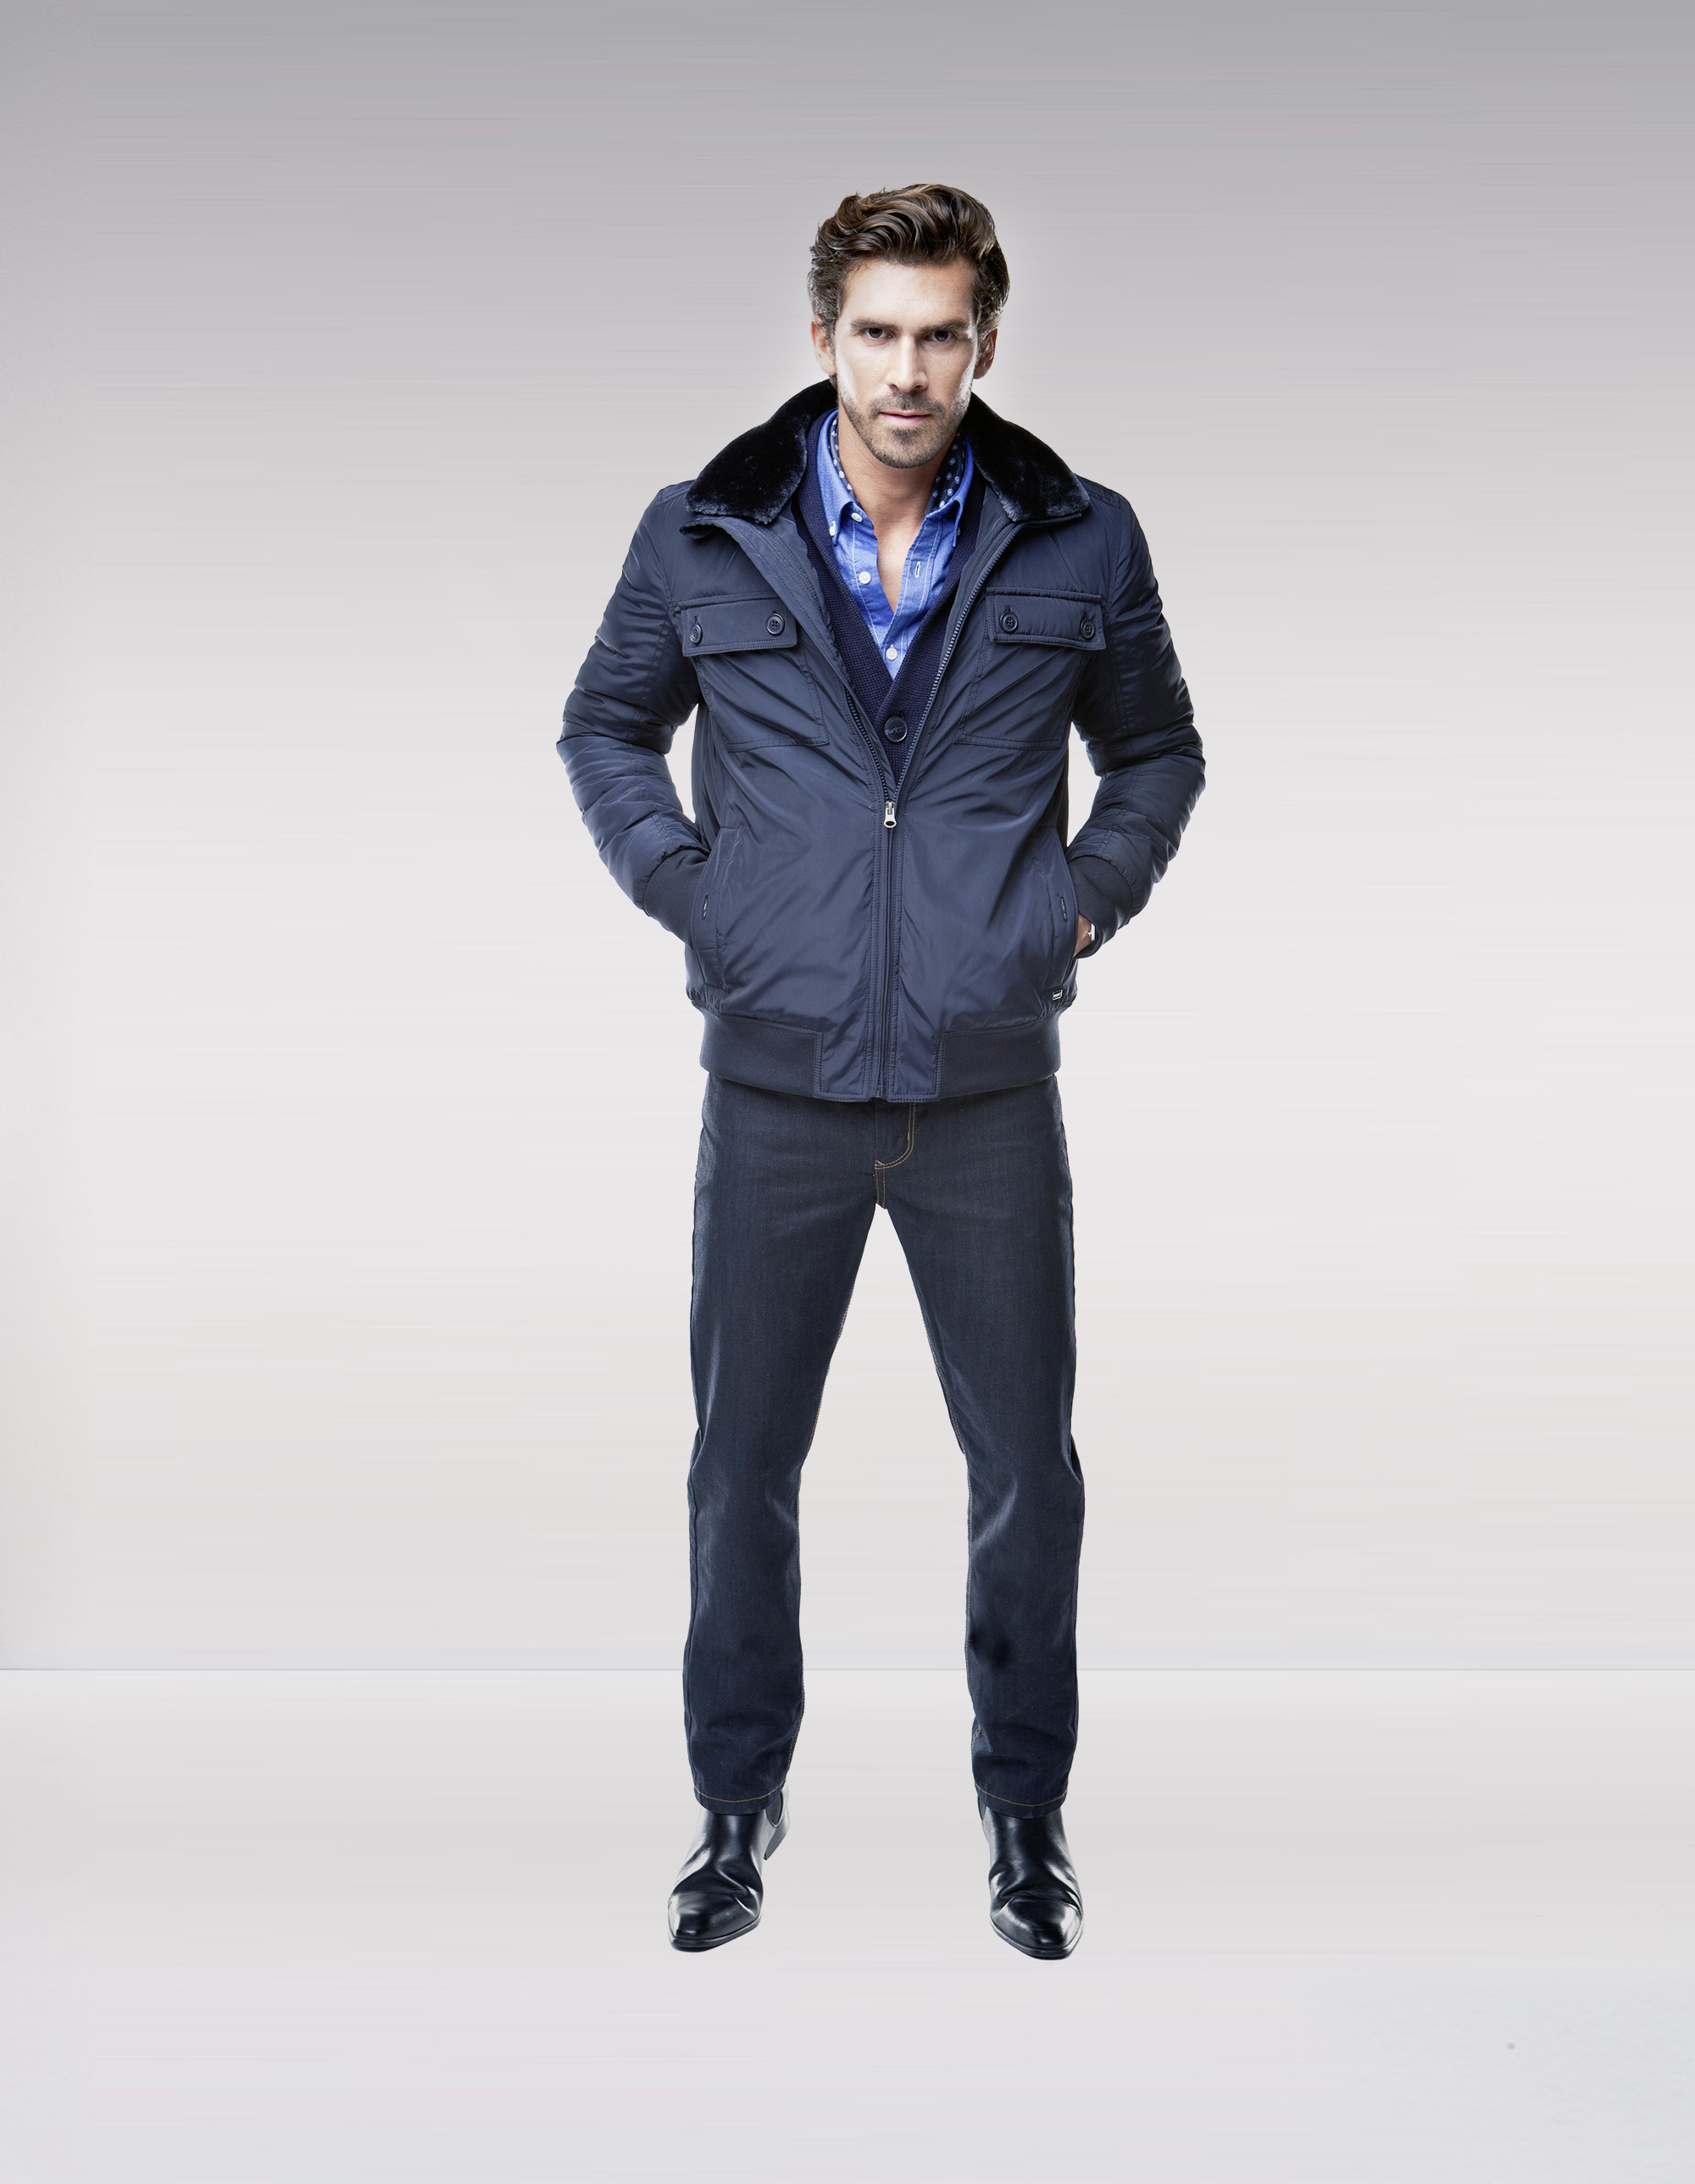 Veste homme chic decontracte - Tenue chic et decontractee ...